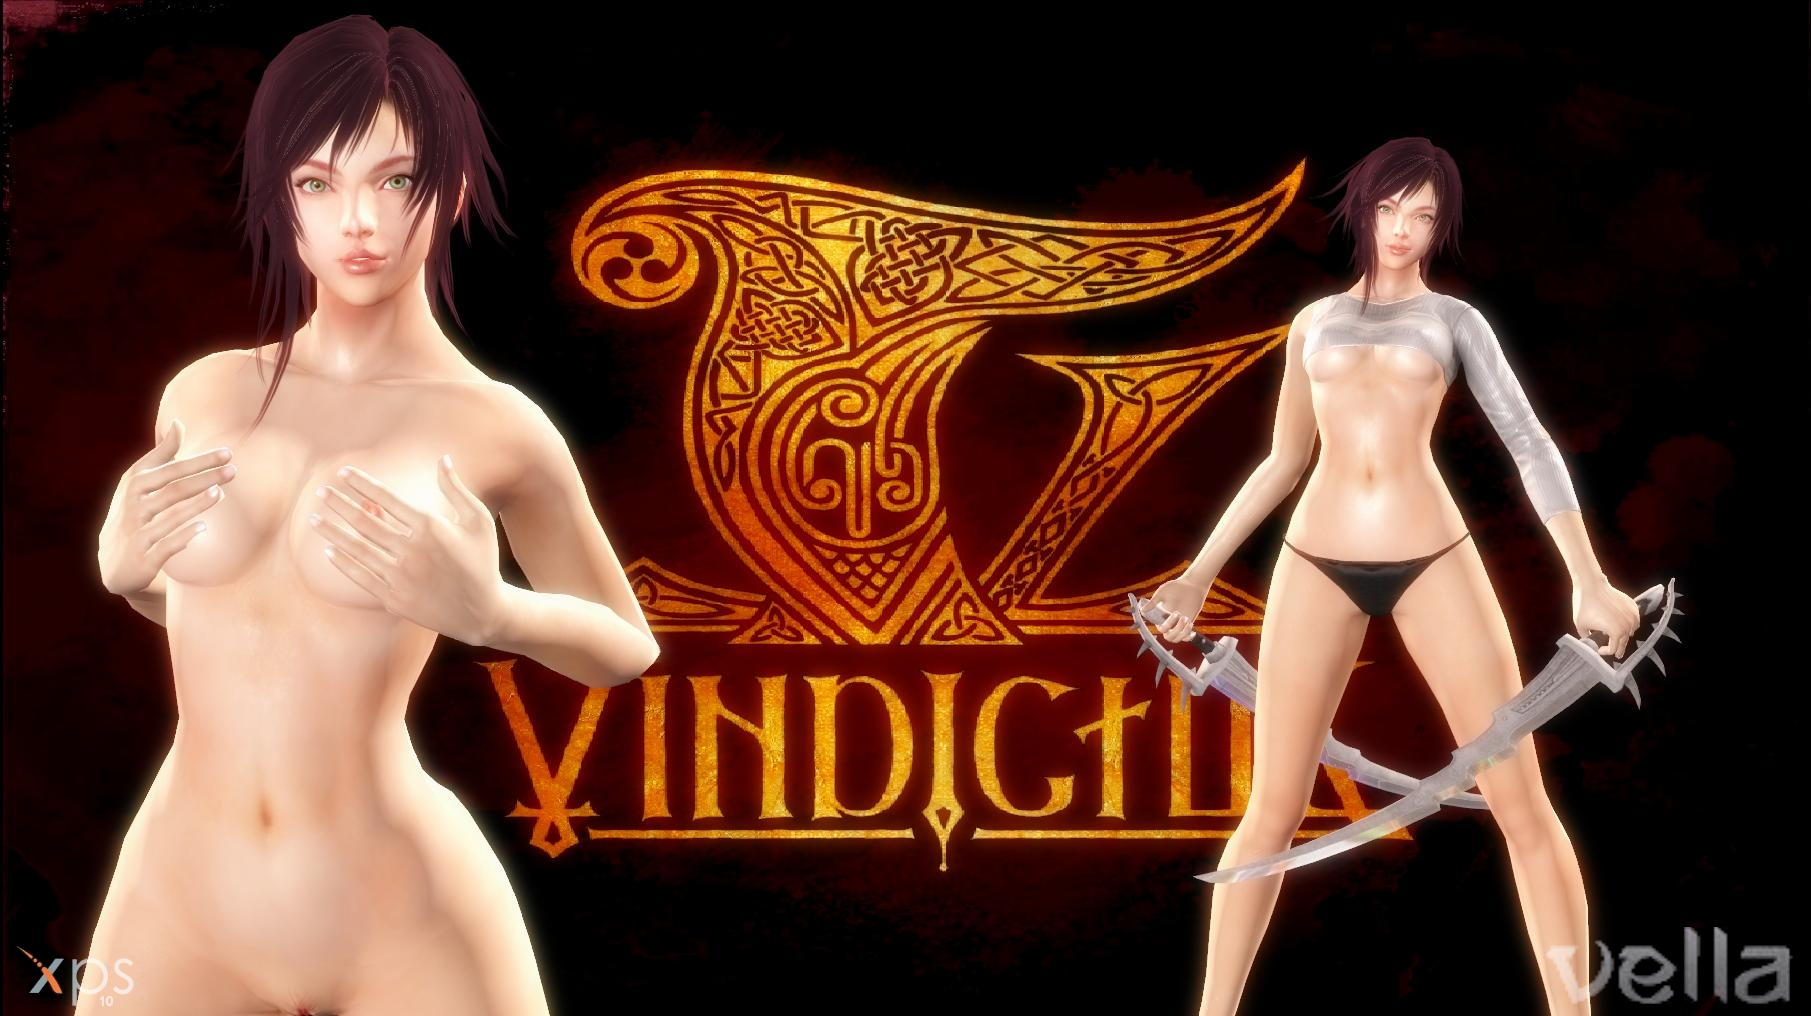 Naked in vindictus sex pics